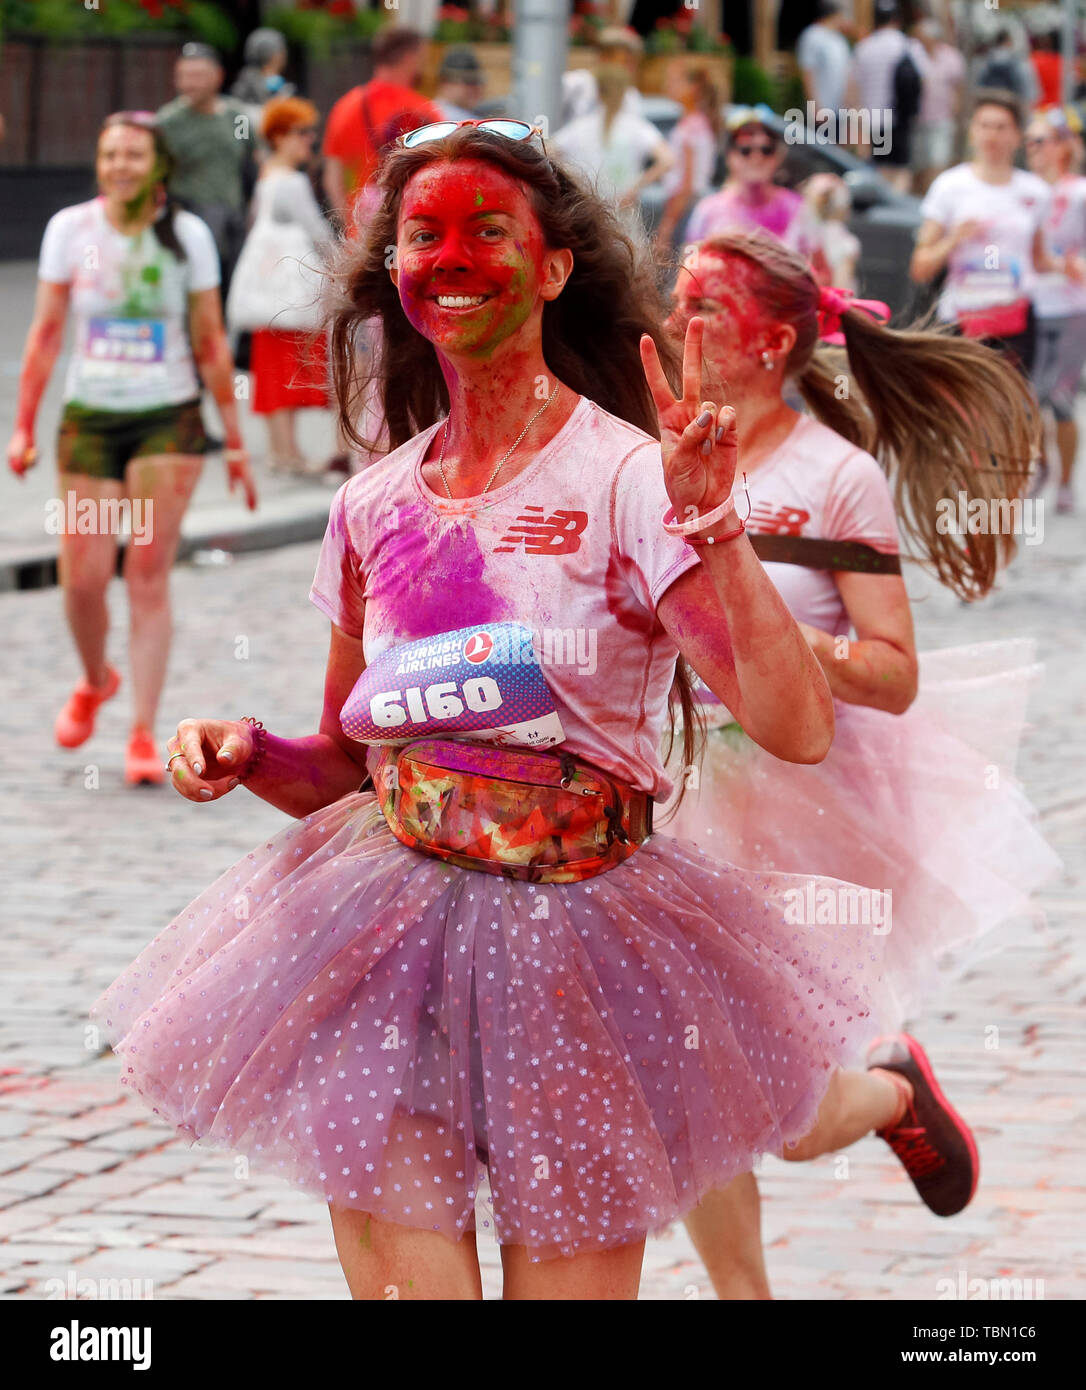 Woman showered in colours shows the peace sign during the run. The Color Run, also known as 'the happiest 5,000 meters on the planet', is an event series and paint race, its first event was in the United States in January 2012 since then the run has spread across the globe leaving a trail of color and happy runners across different continents and countries. The untimed event has no winners or prizes, but runners are showered with colored powder, made of food-grade corn starch, at stations along the run. In Ukrainian capital the first time Kyiv Color Run started in 2014. - Stock Image